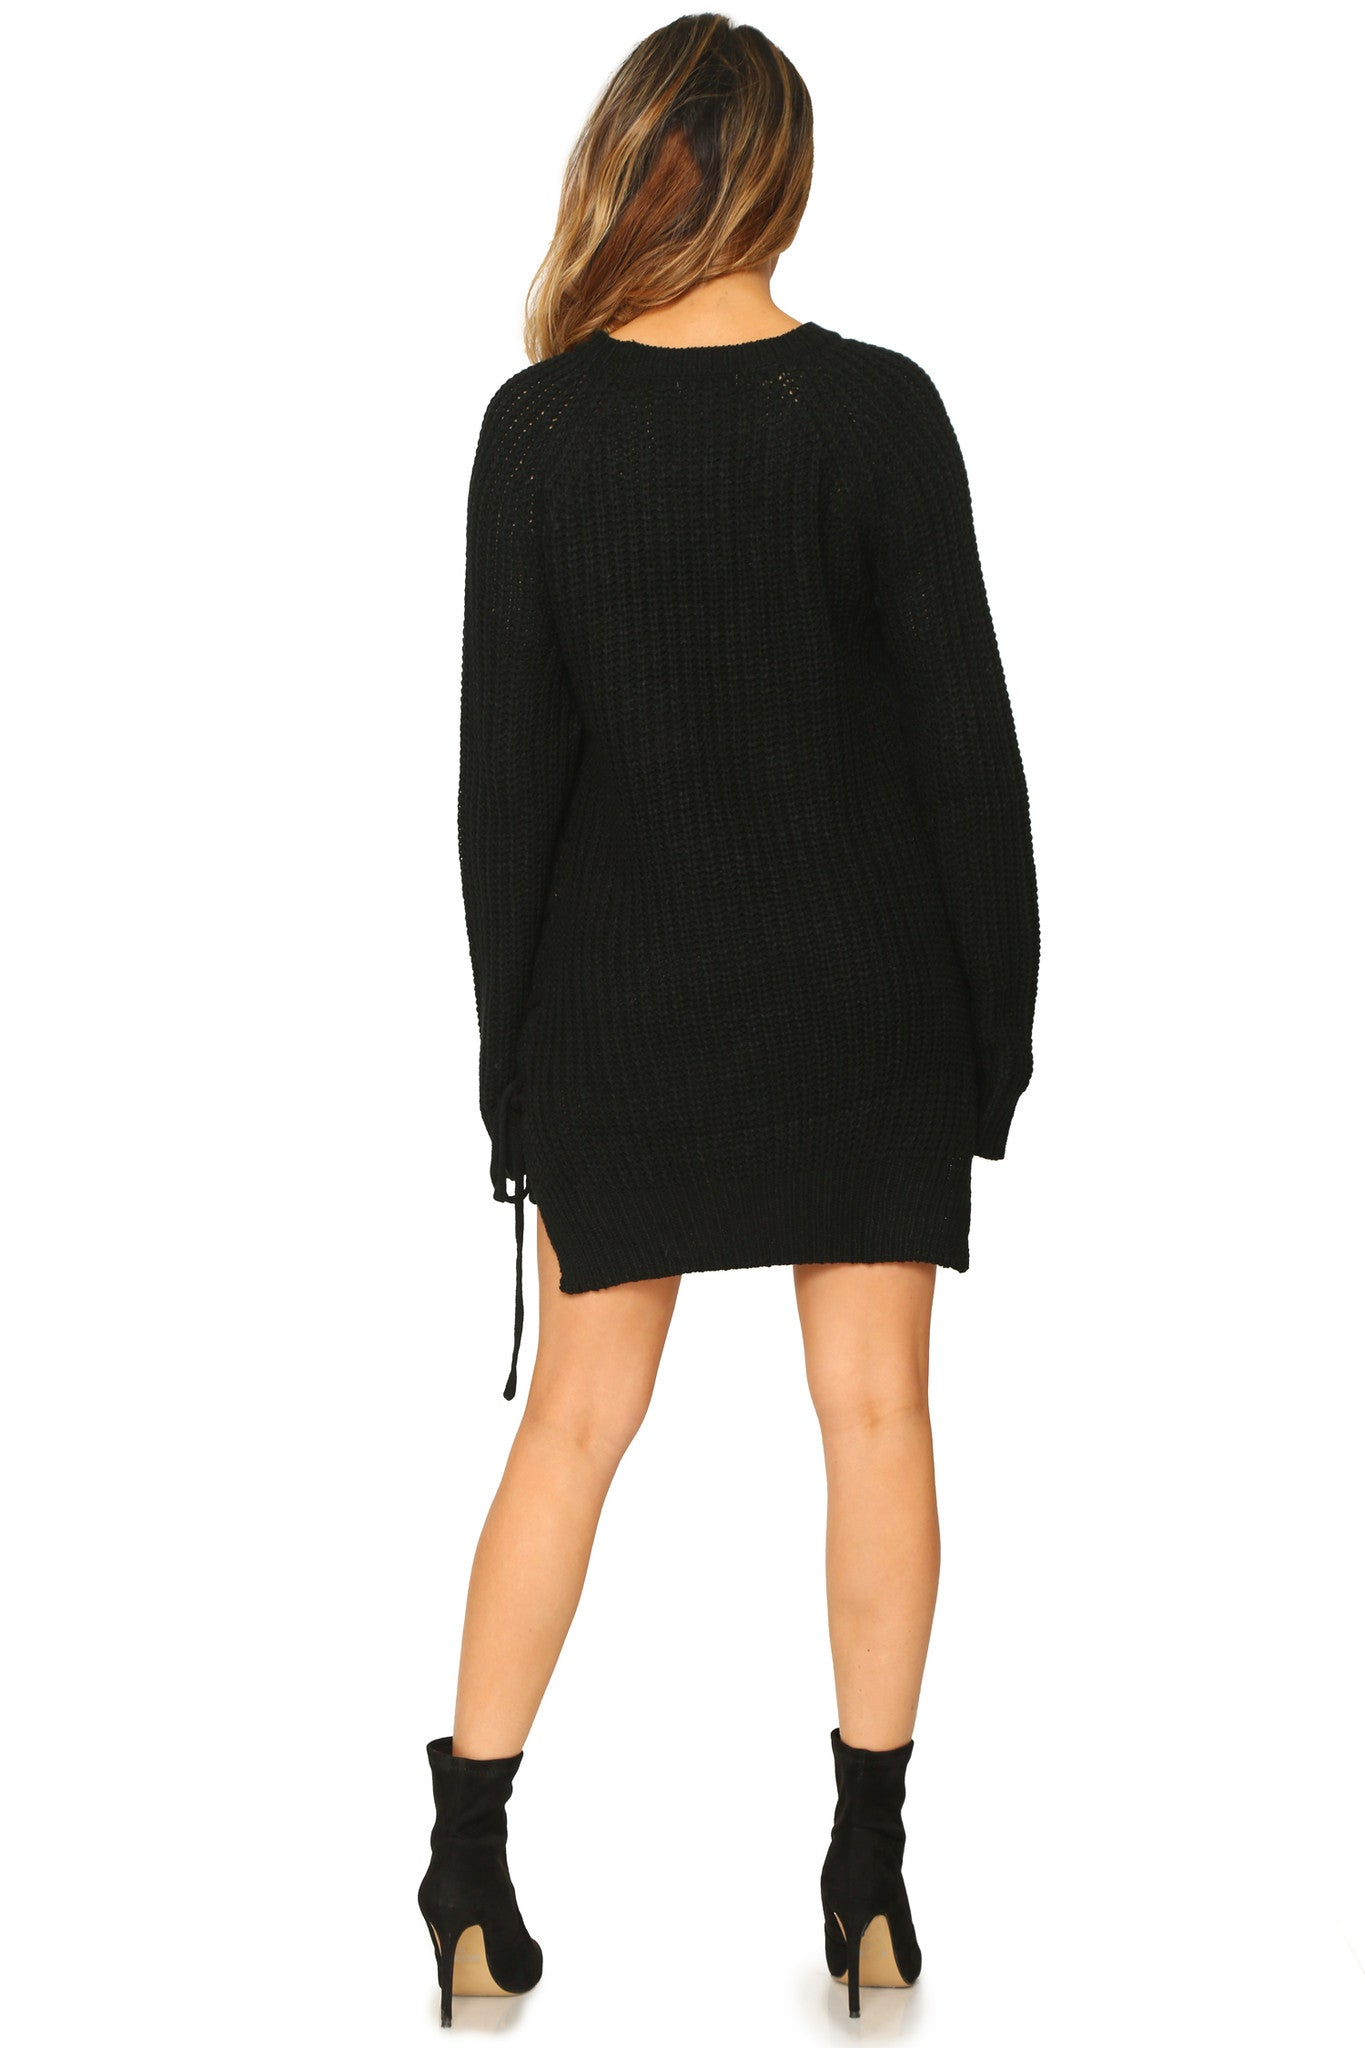 TAMIA SWEATER DRESS - Glam Envy - 3